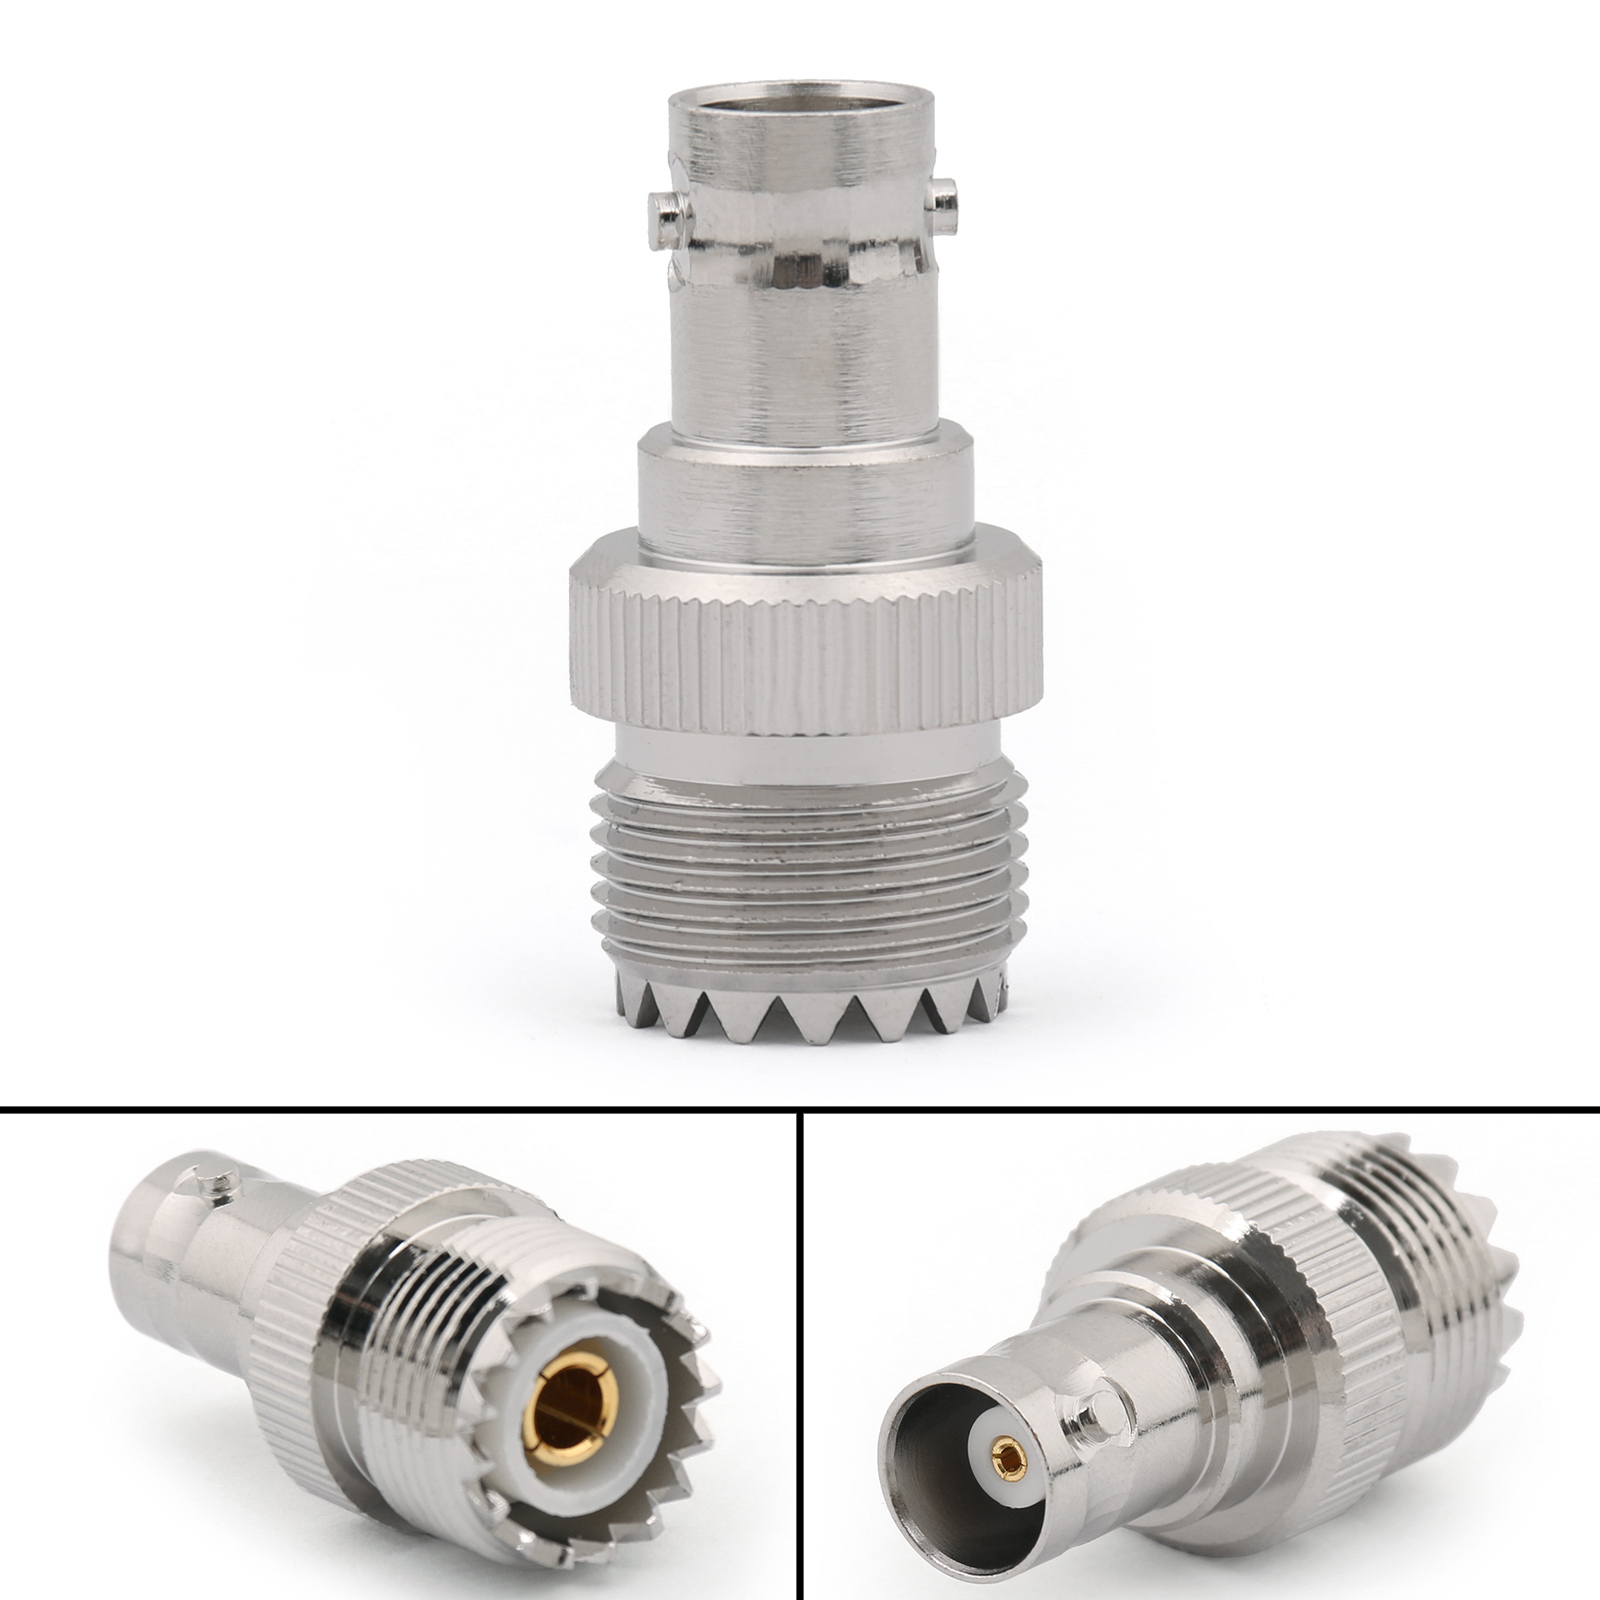 Shape: Same as the picture show 1. Type: RF Connector Adapter 2. Insulators: PTFE 3. Impedance: 50 ohm 4. Connector A: UHF Female 5. Connector B: BNC Female